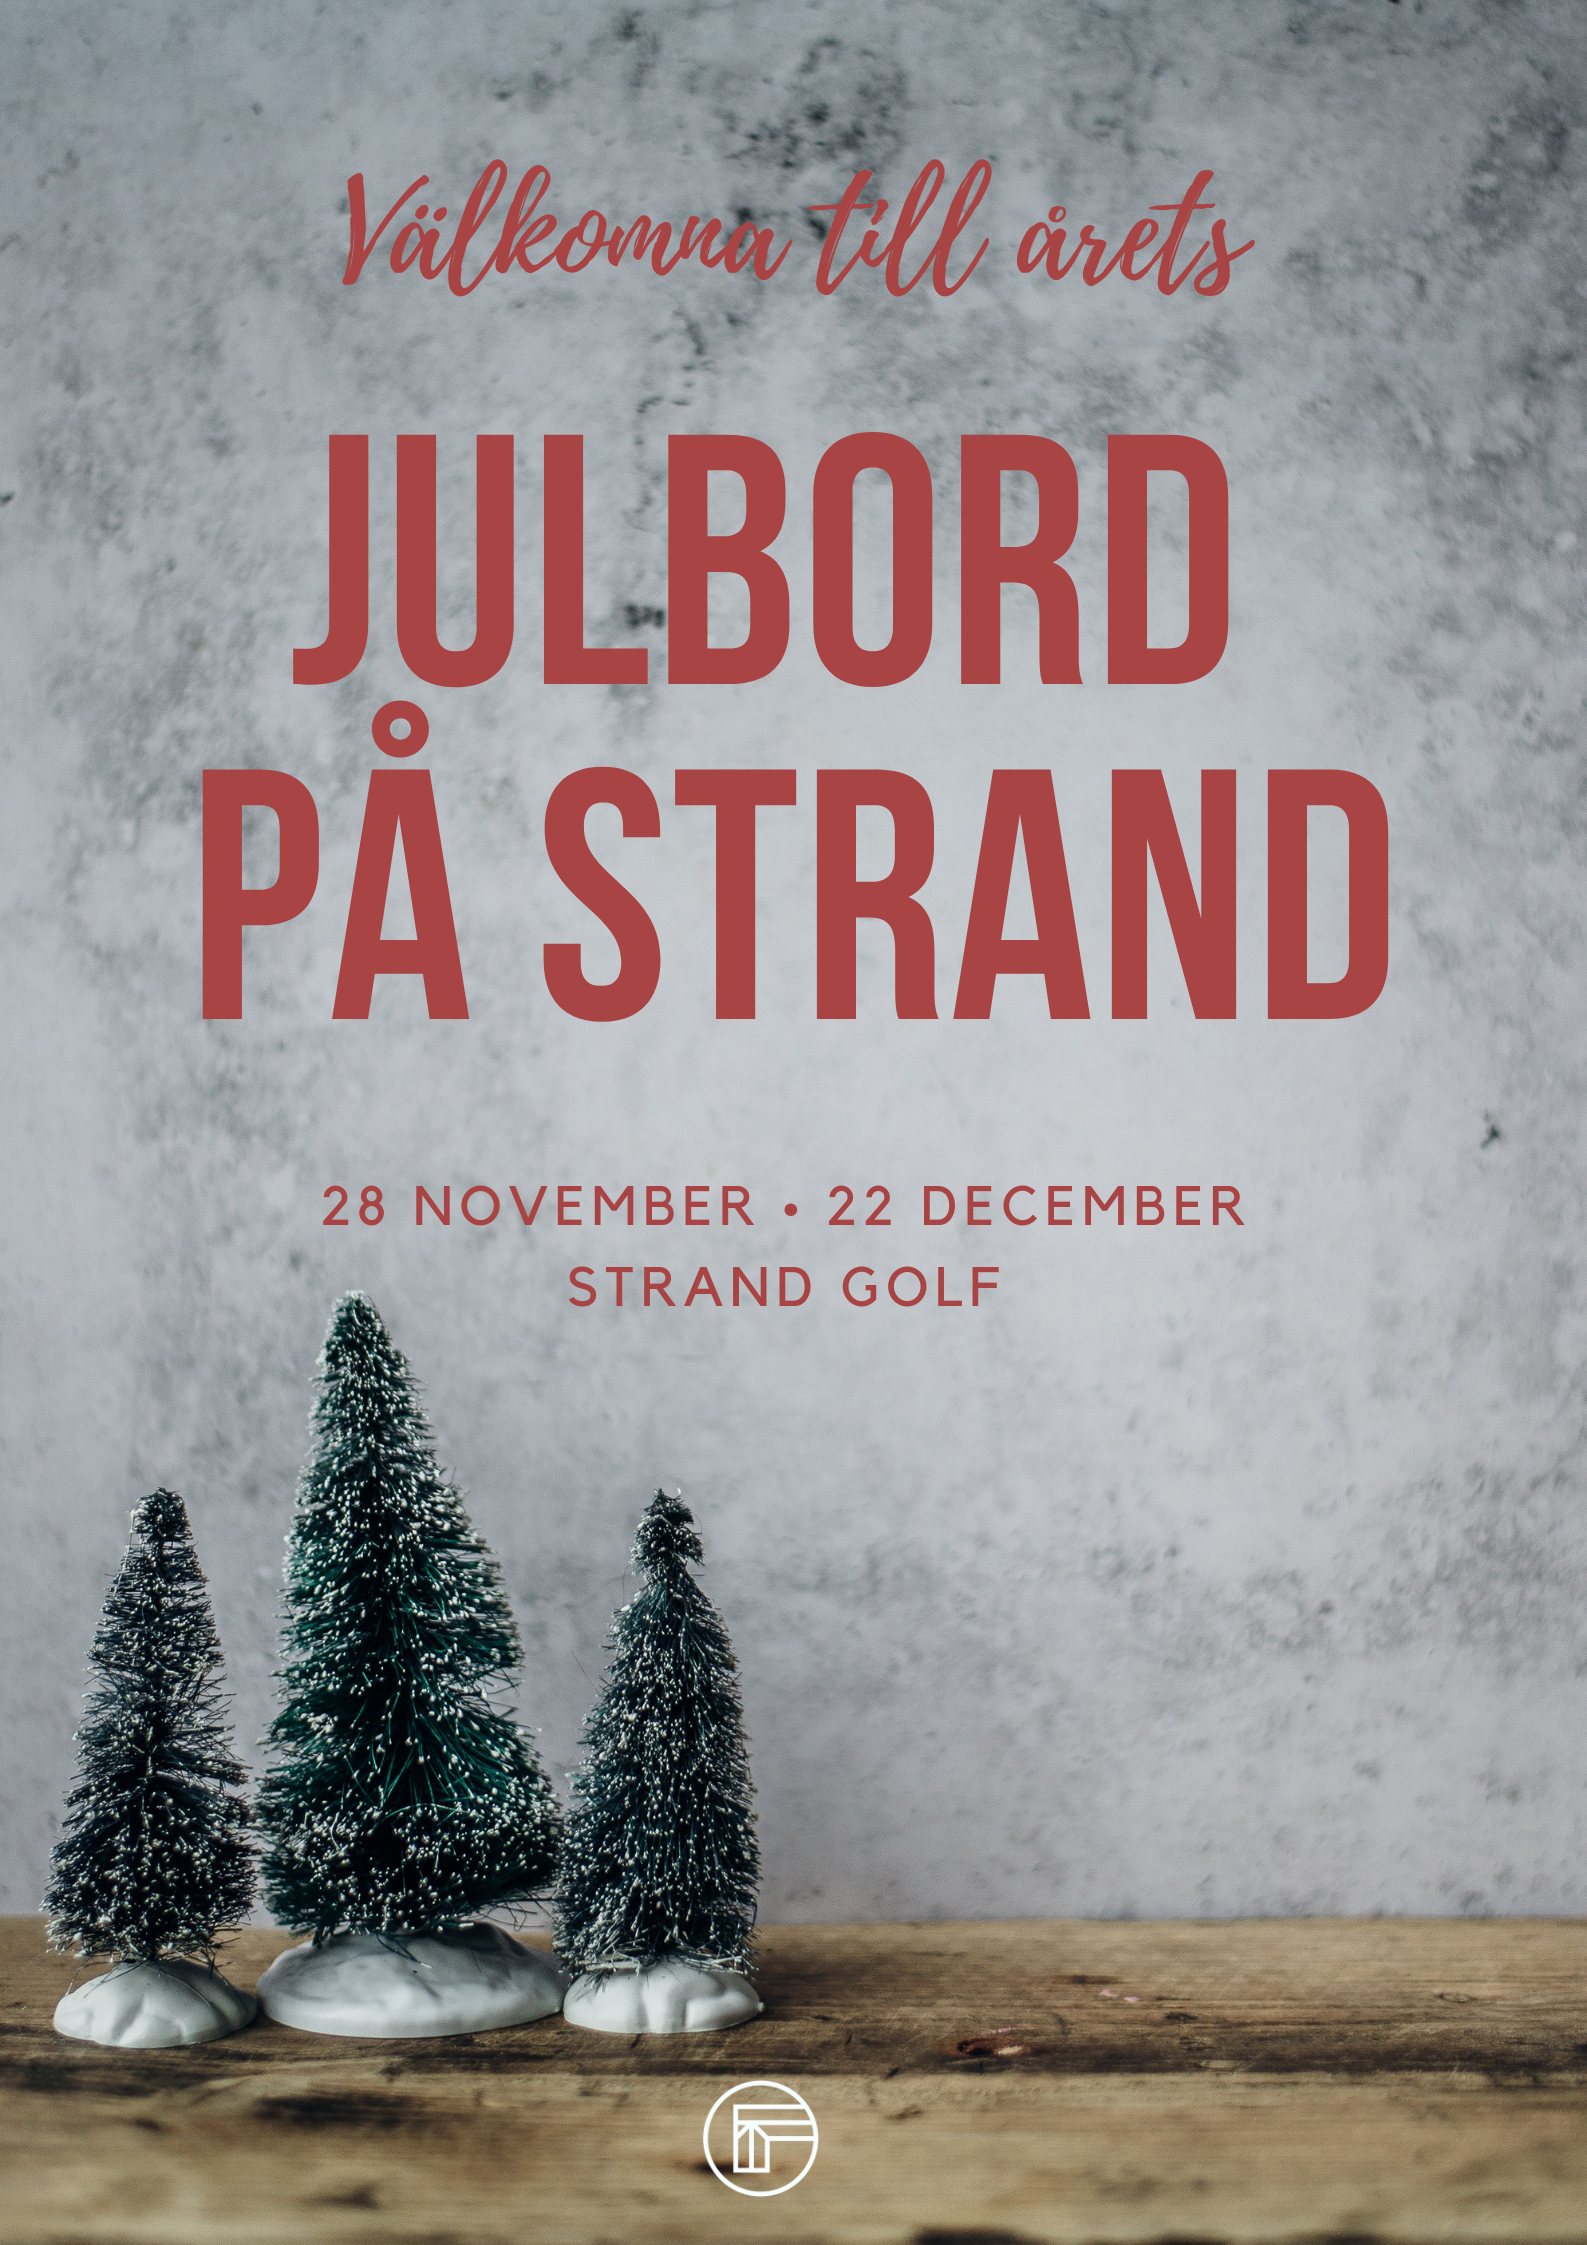 Julbord 2019 - We are now taking bookings for Julbord. More information can be found on the restaurant page of the website. Bookings can be made through email at info@strandgolf.se or by phoning the restaurant on 016 39 51 65.